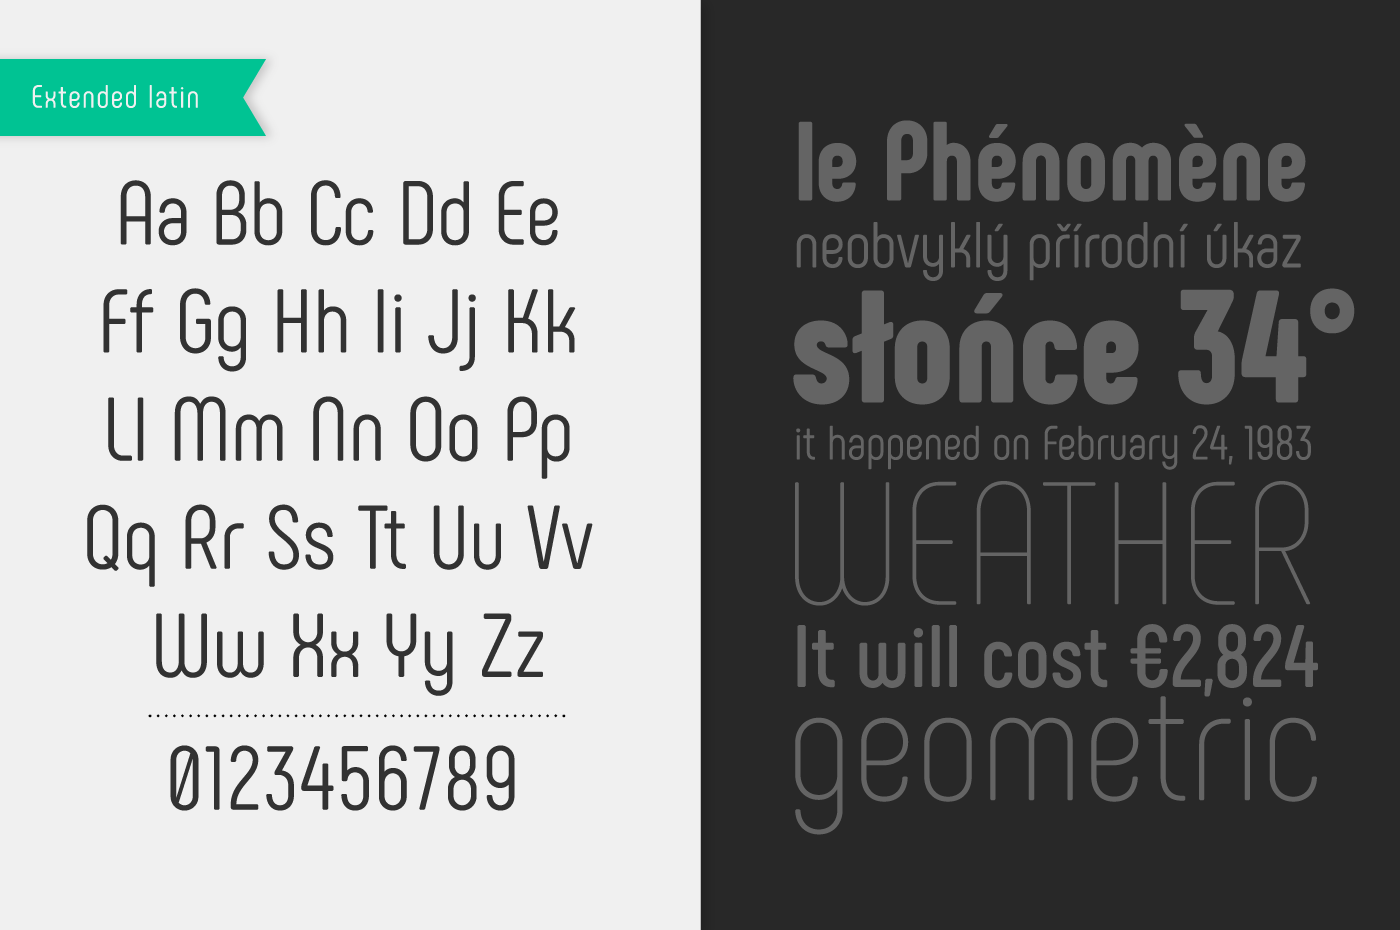 Free font free fonts free typography poster narrow кириллица Cyrillic extended latin Latin Typeface Phenomena font Phenomena free phenomena